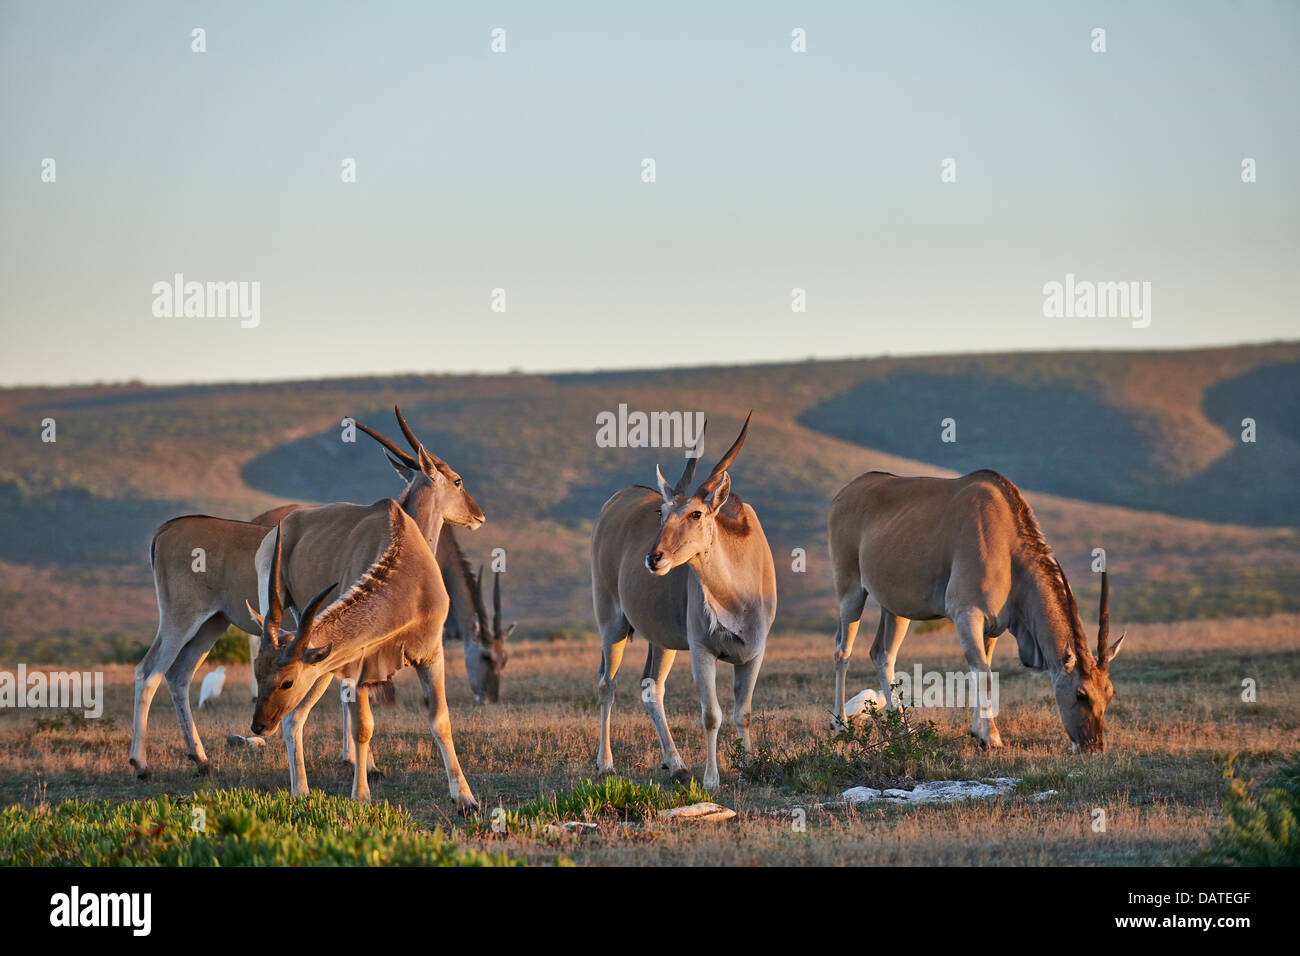 Common eland (Taurotragus oryx), De Hoop Nature Reserve, Western Cape, South Africa - Stock Image